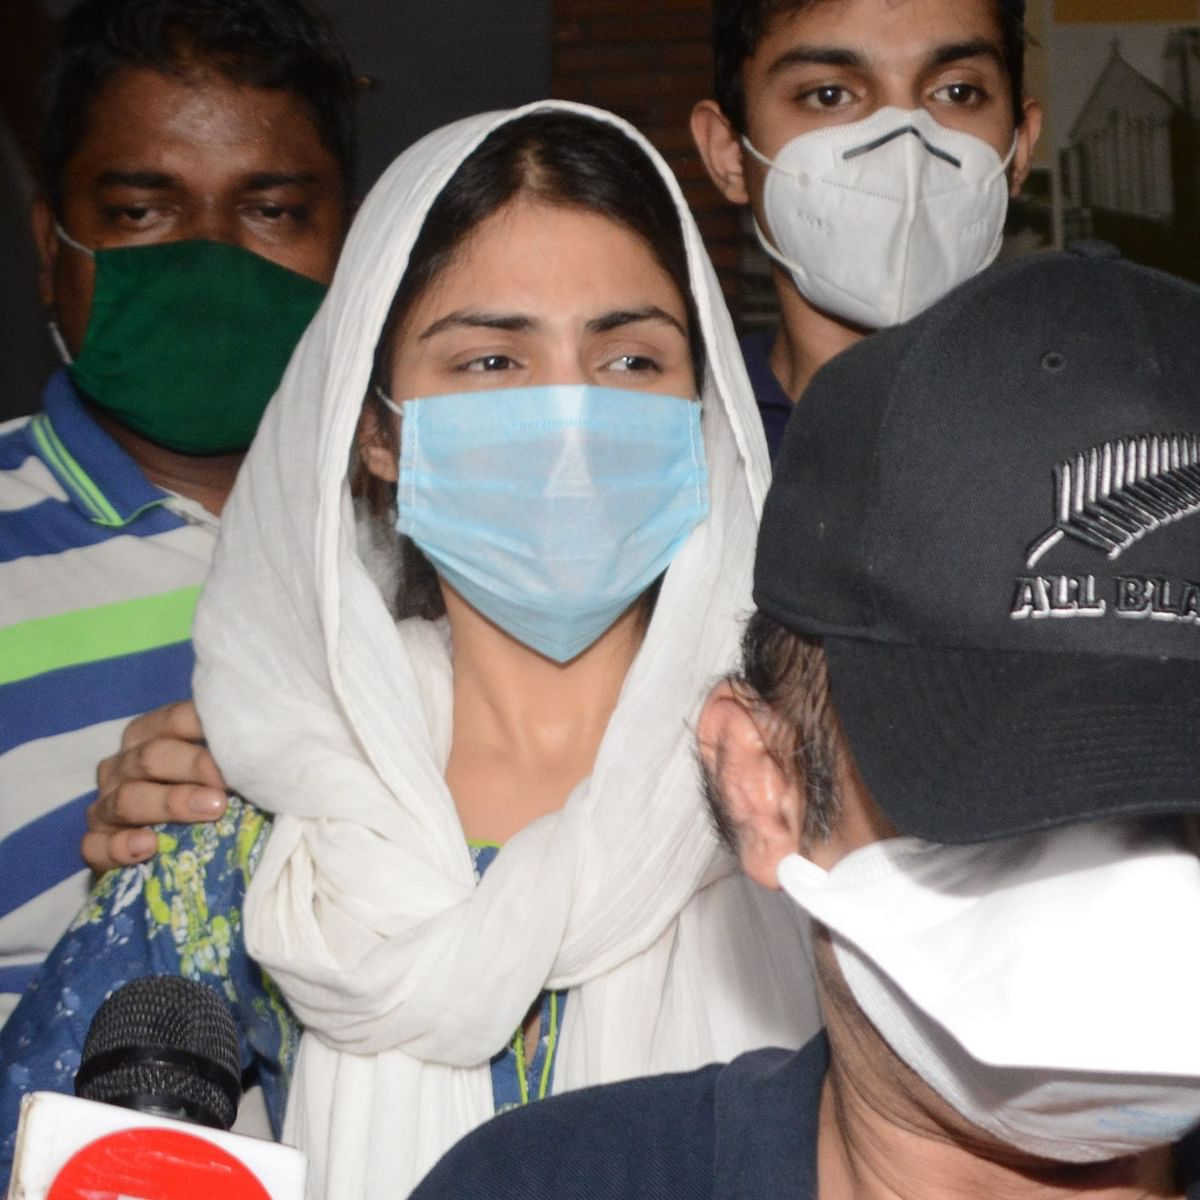 Sushant Singh Rajput case: After 28 days, Rhea Chakraborty walks out of jail